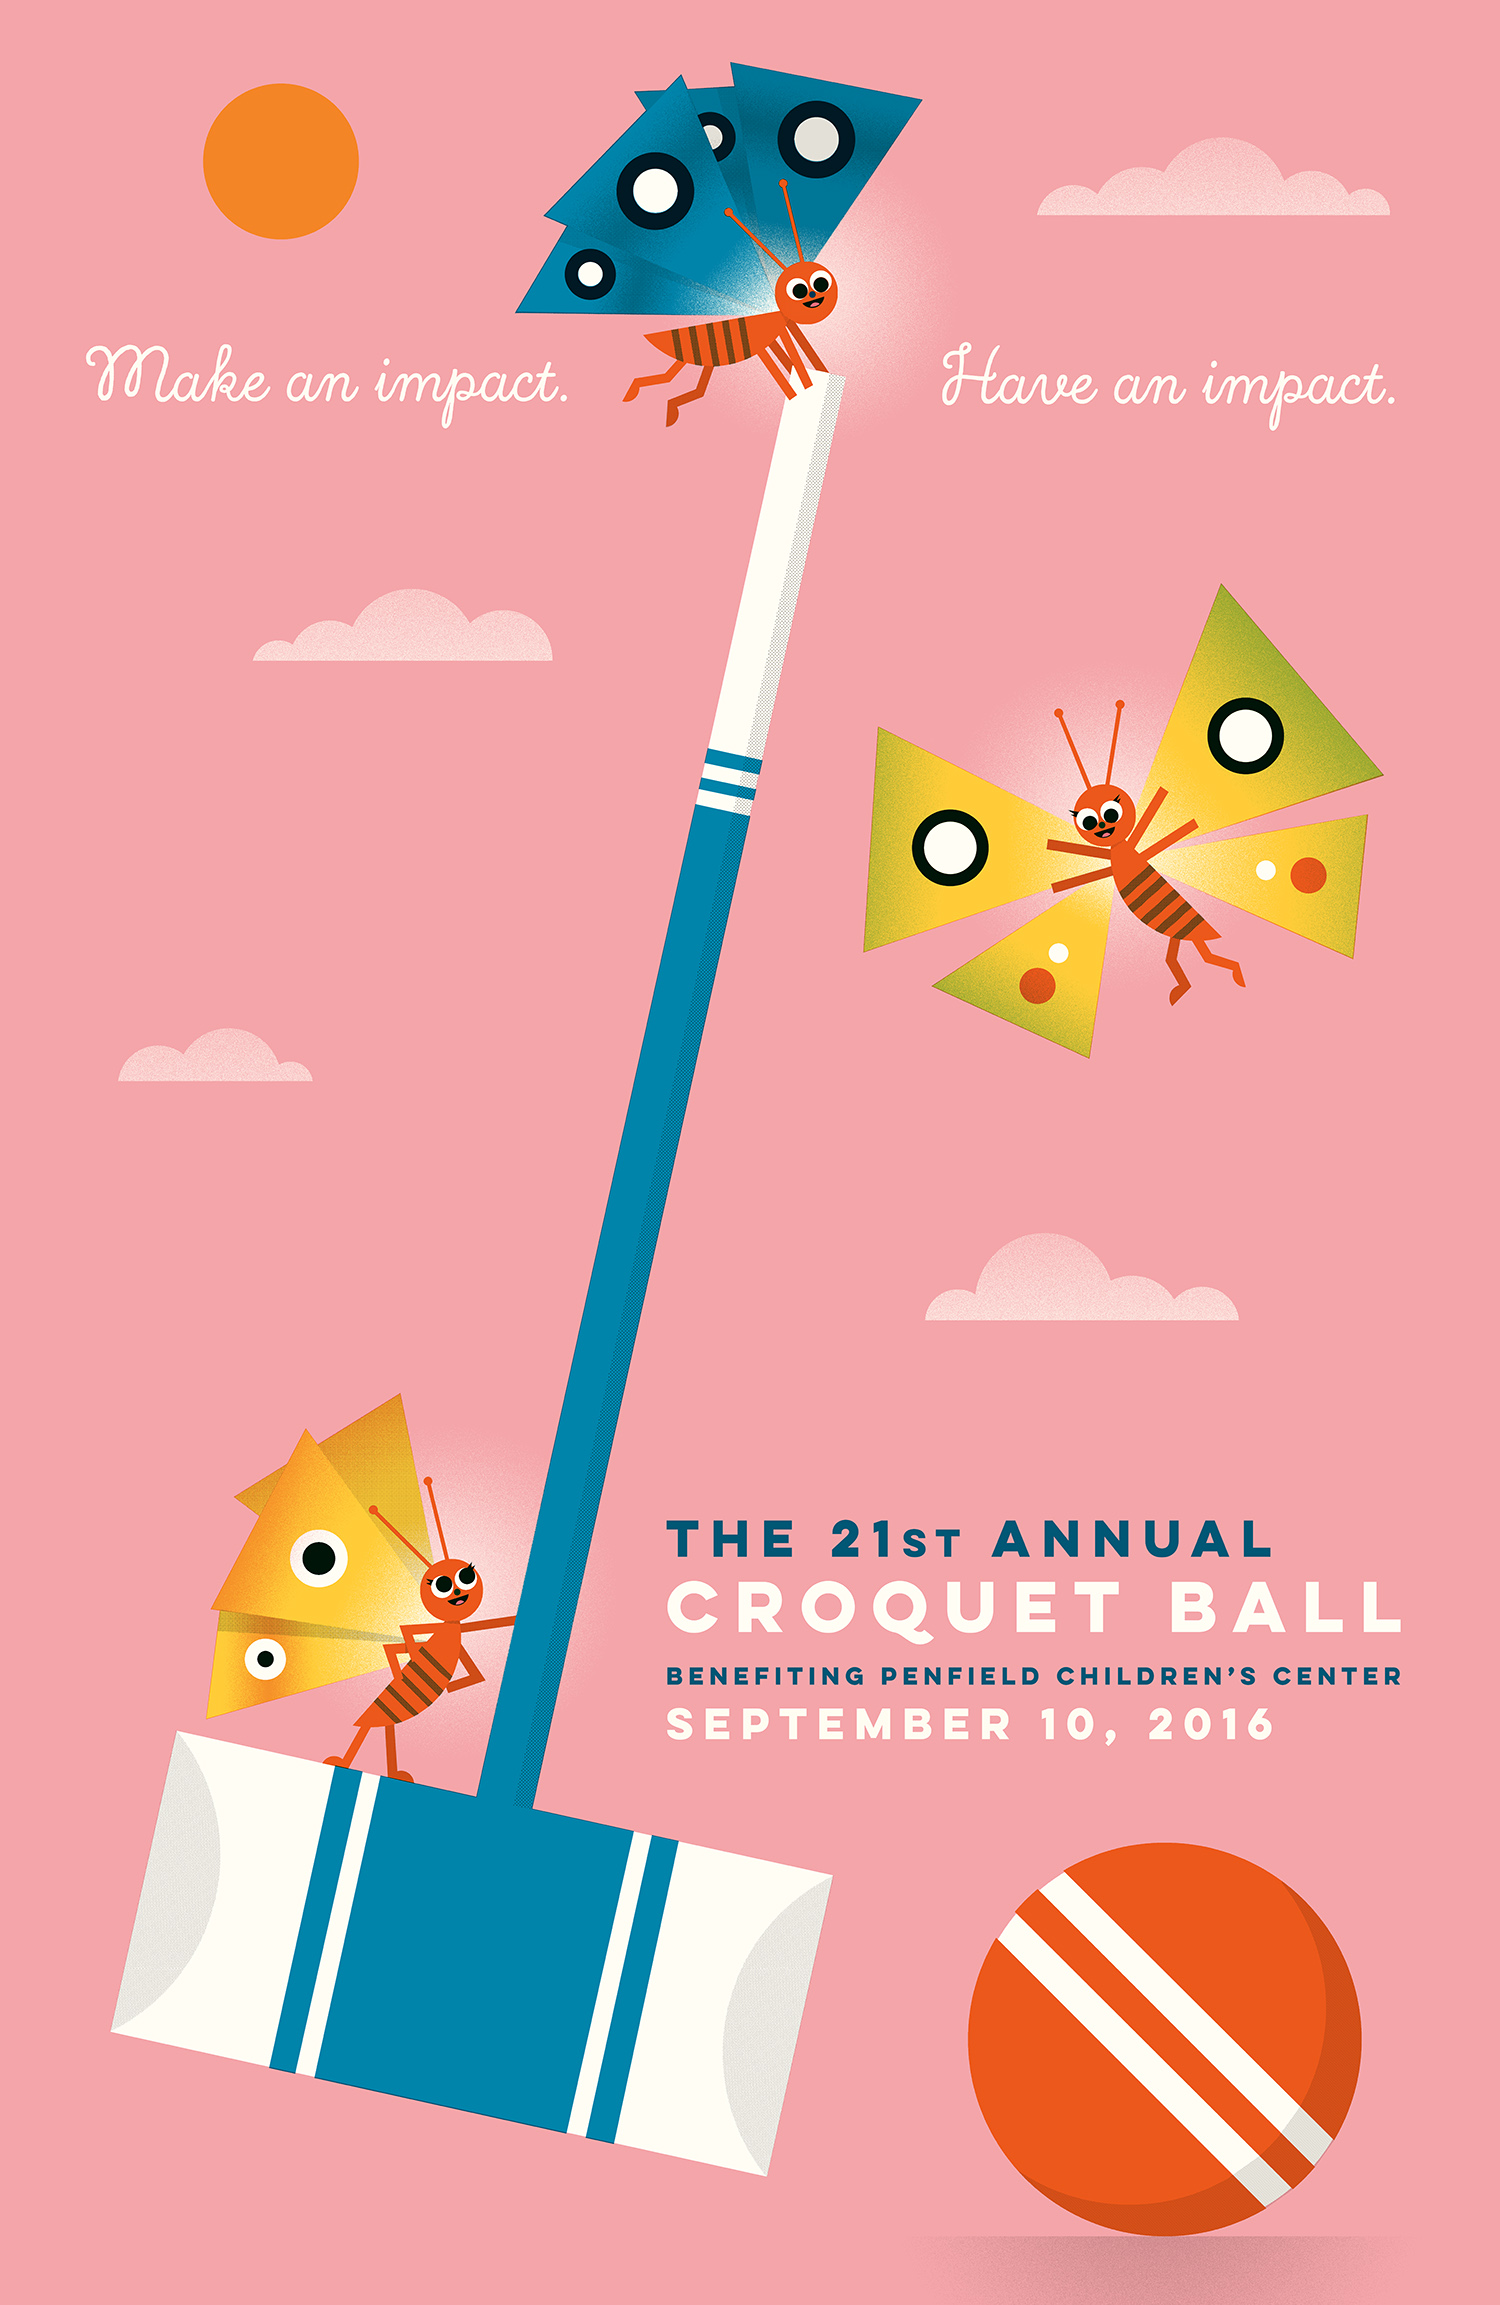 The 21st Annual Croquet Ball